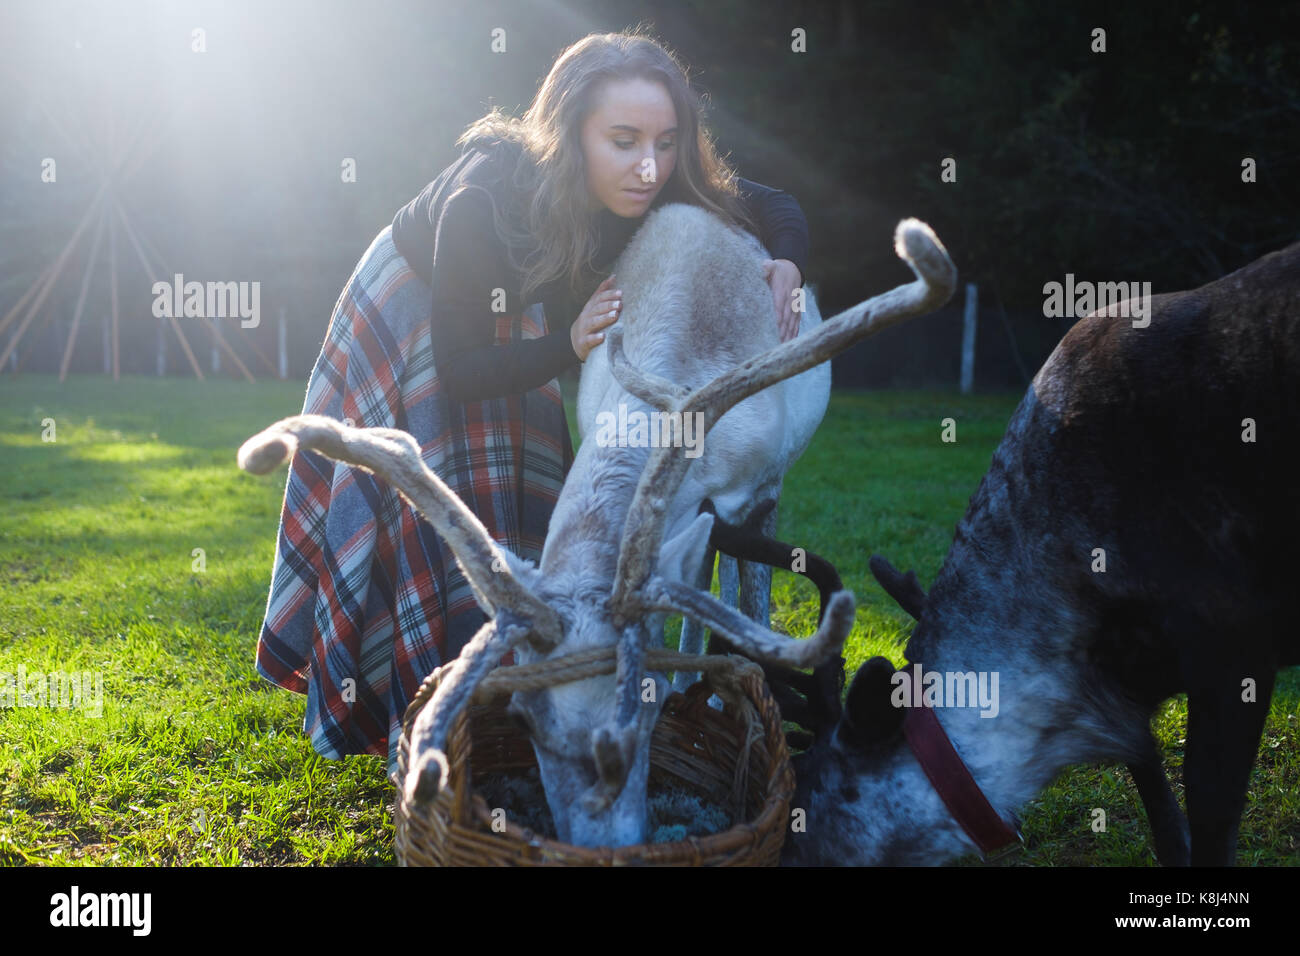 Woman in a plaid skirt feeding reindeer tarandus on green field - Stock Image